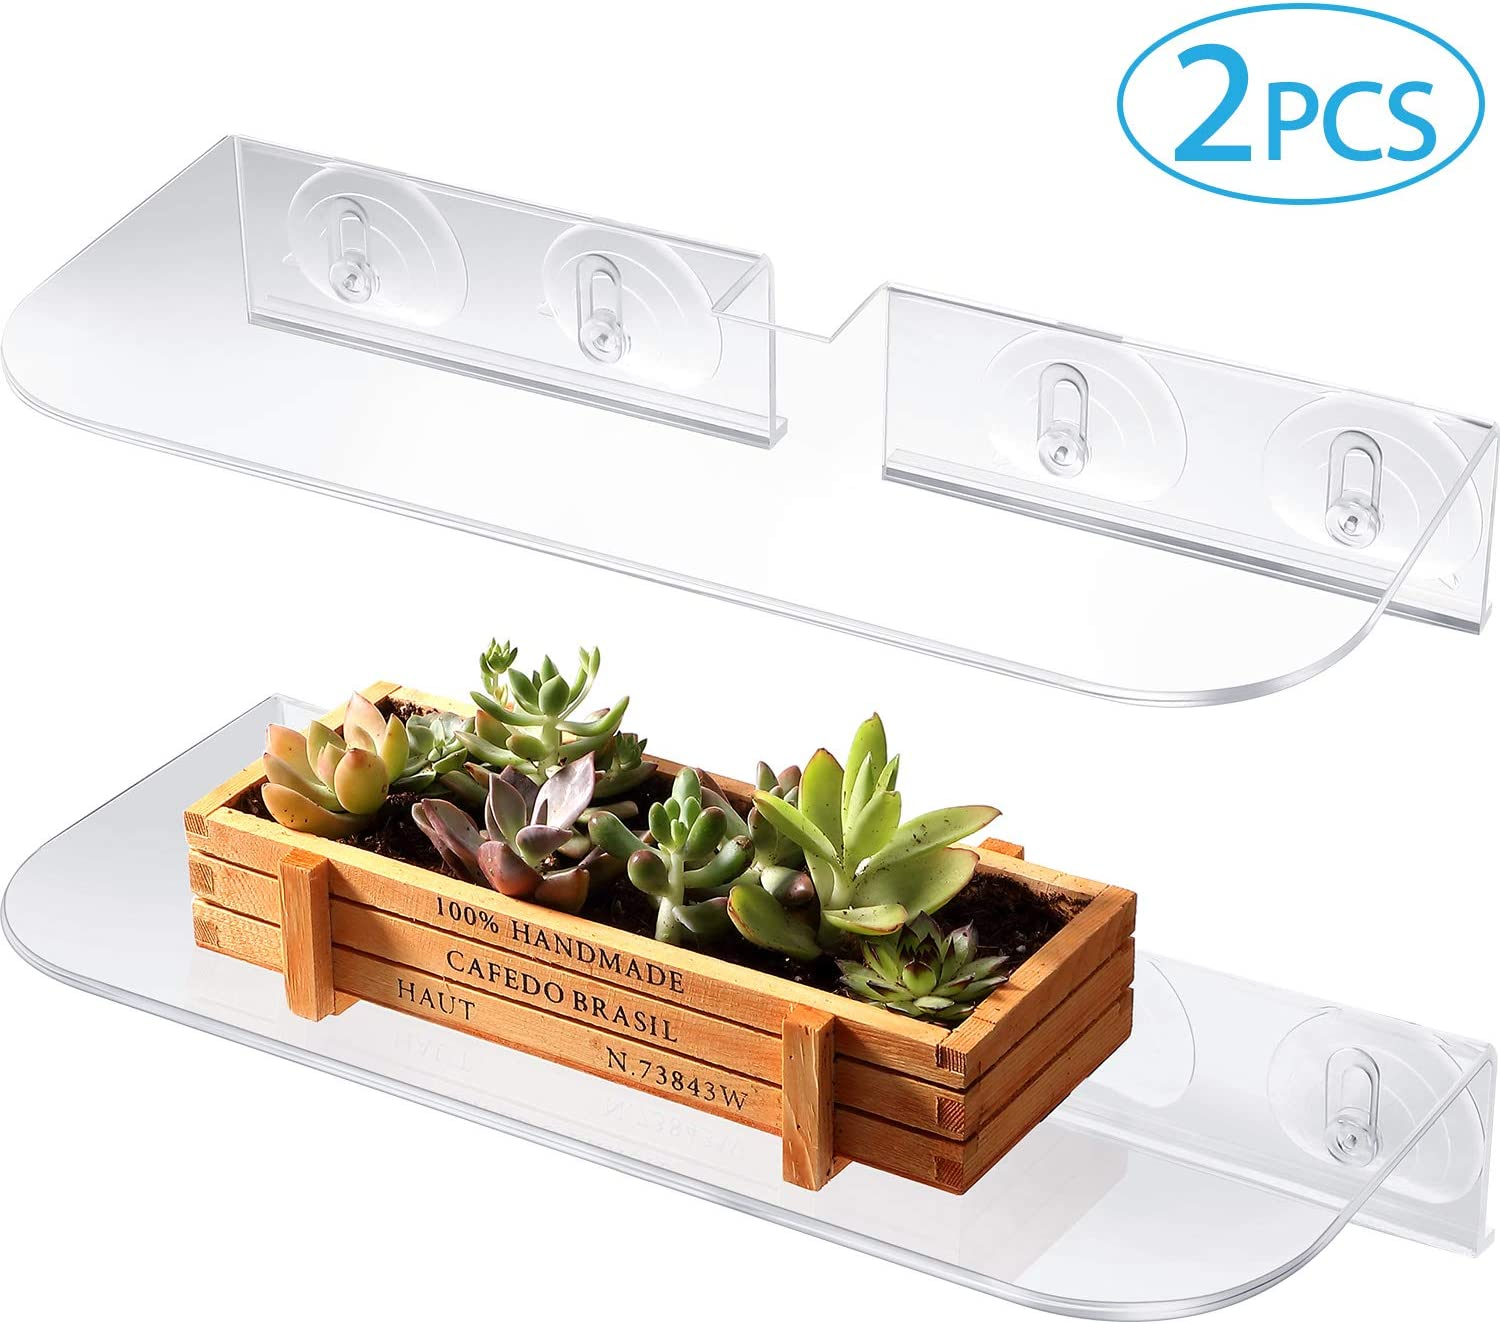 BBTO 2 Pieces Ledge Suction Cup Window Shelf Acrylic Plant Window Shelf Transparent Window Shelf for Creating Indoor Plants Garden, Seed Starter, Figurines on Your Window